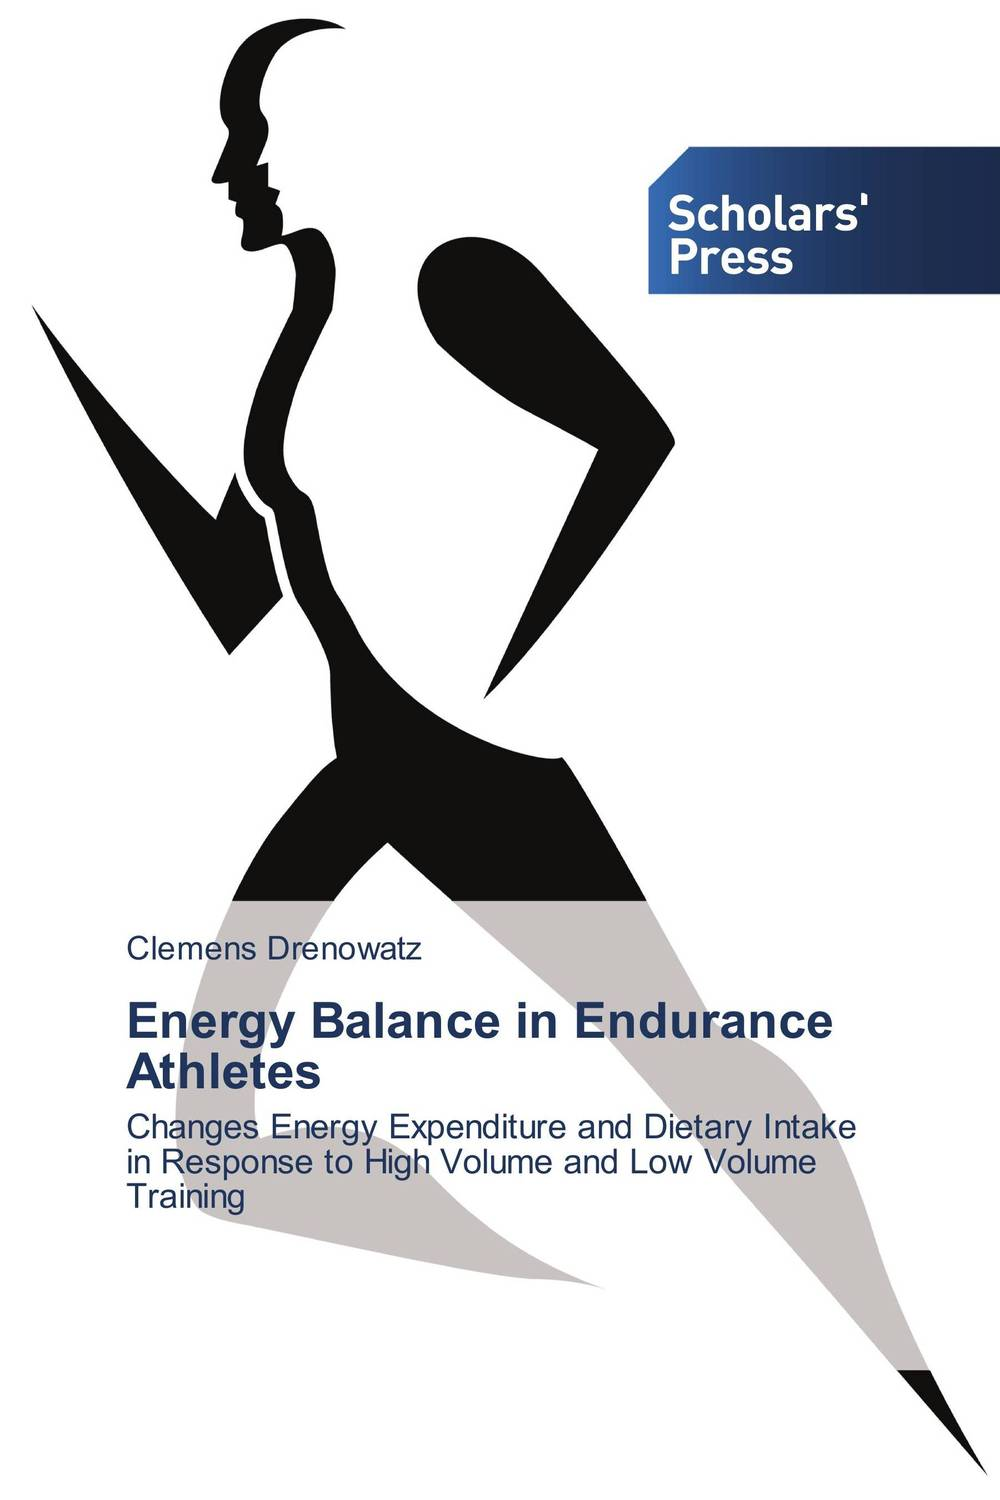 Energy Balance in Endurance Athletes